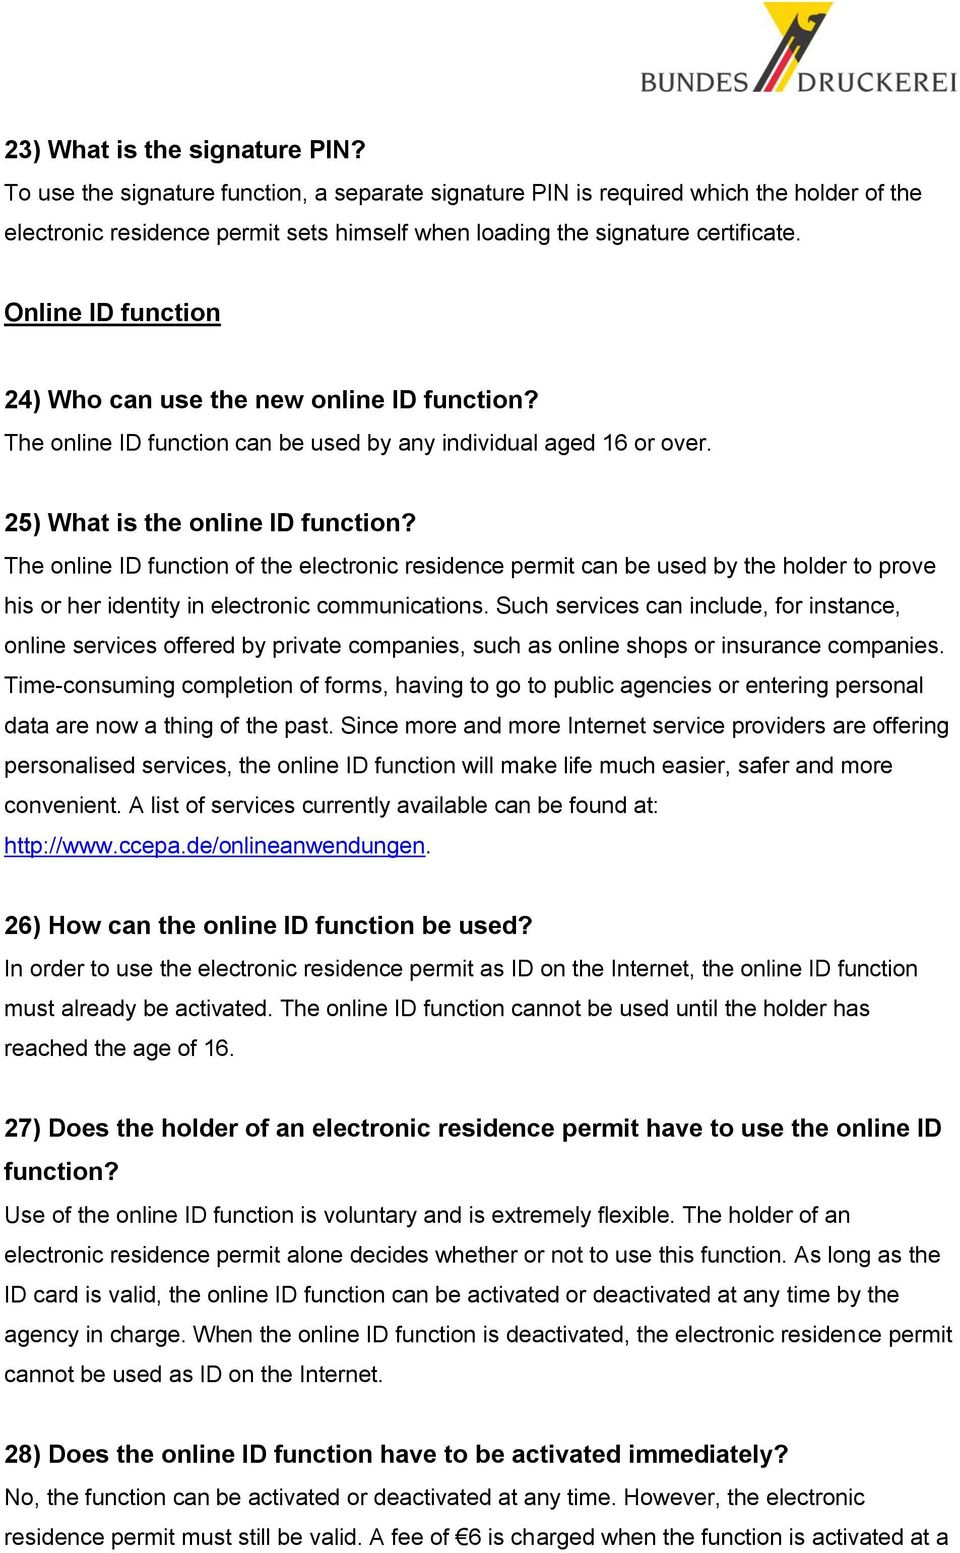 Online ID function 24) Who can use the new online ID function? The online ID function can be used by any individual aged 16 or over. 25) What is the online ID function?